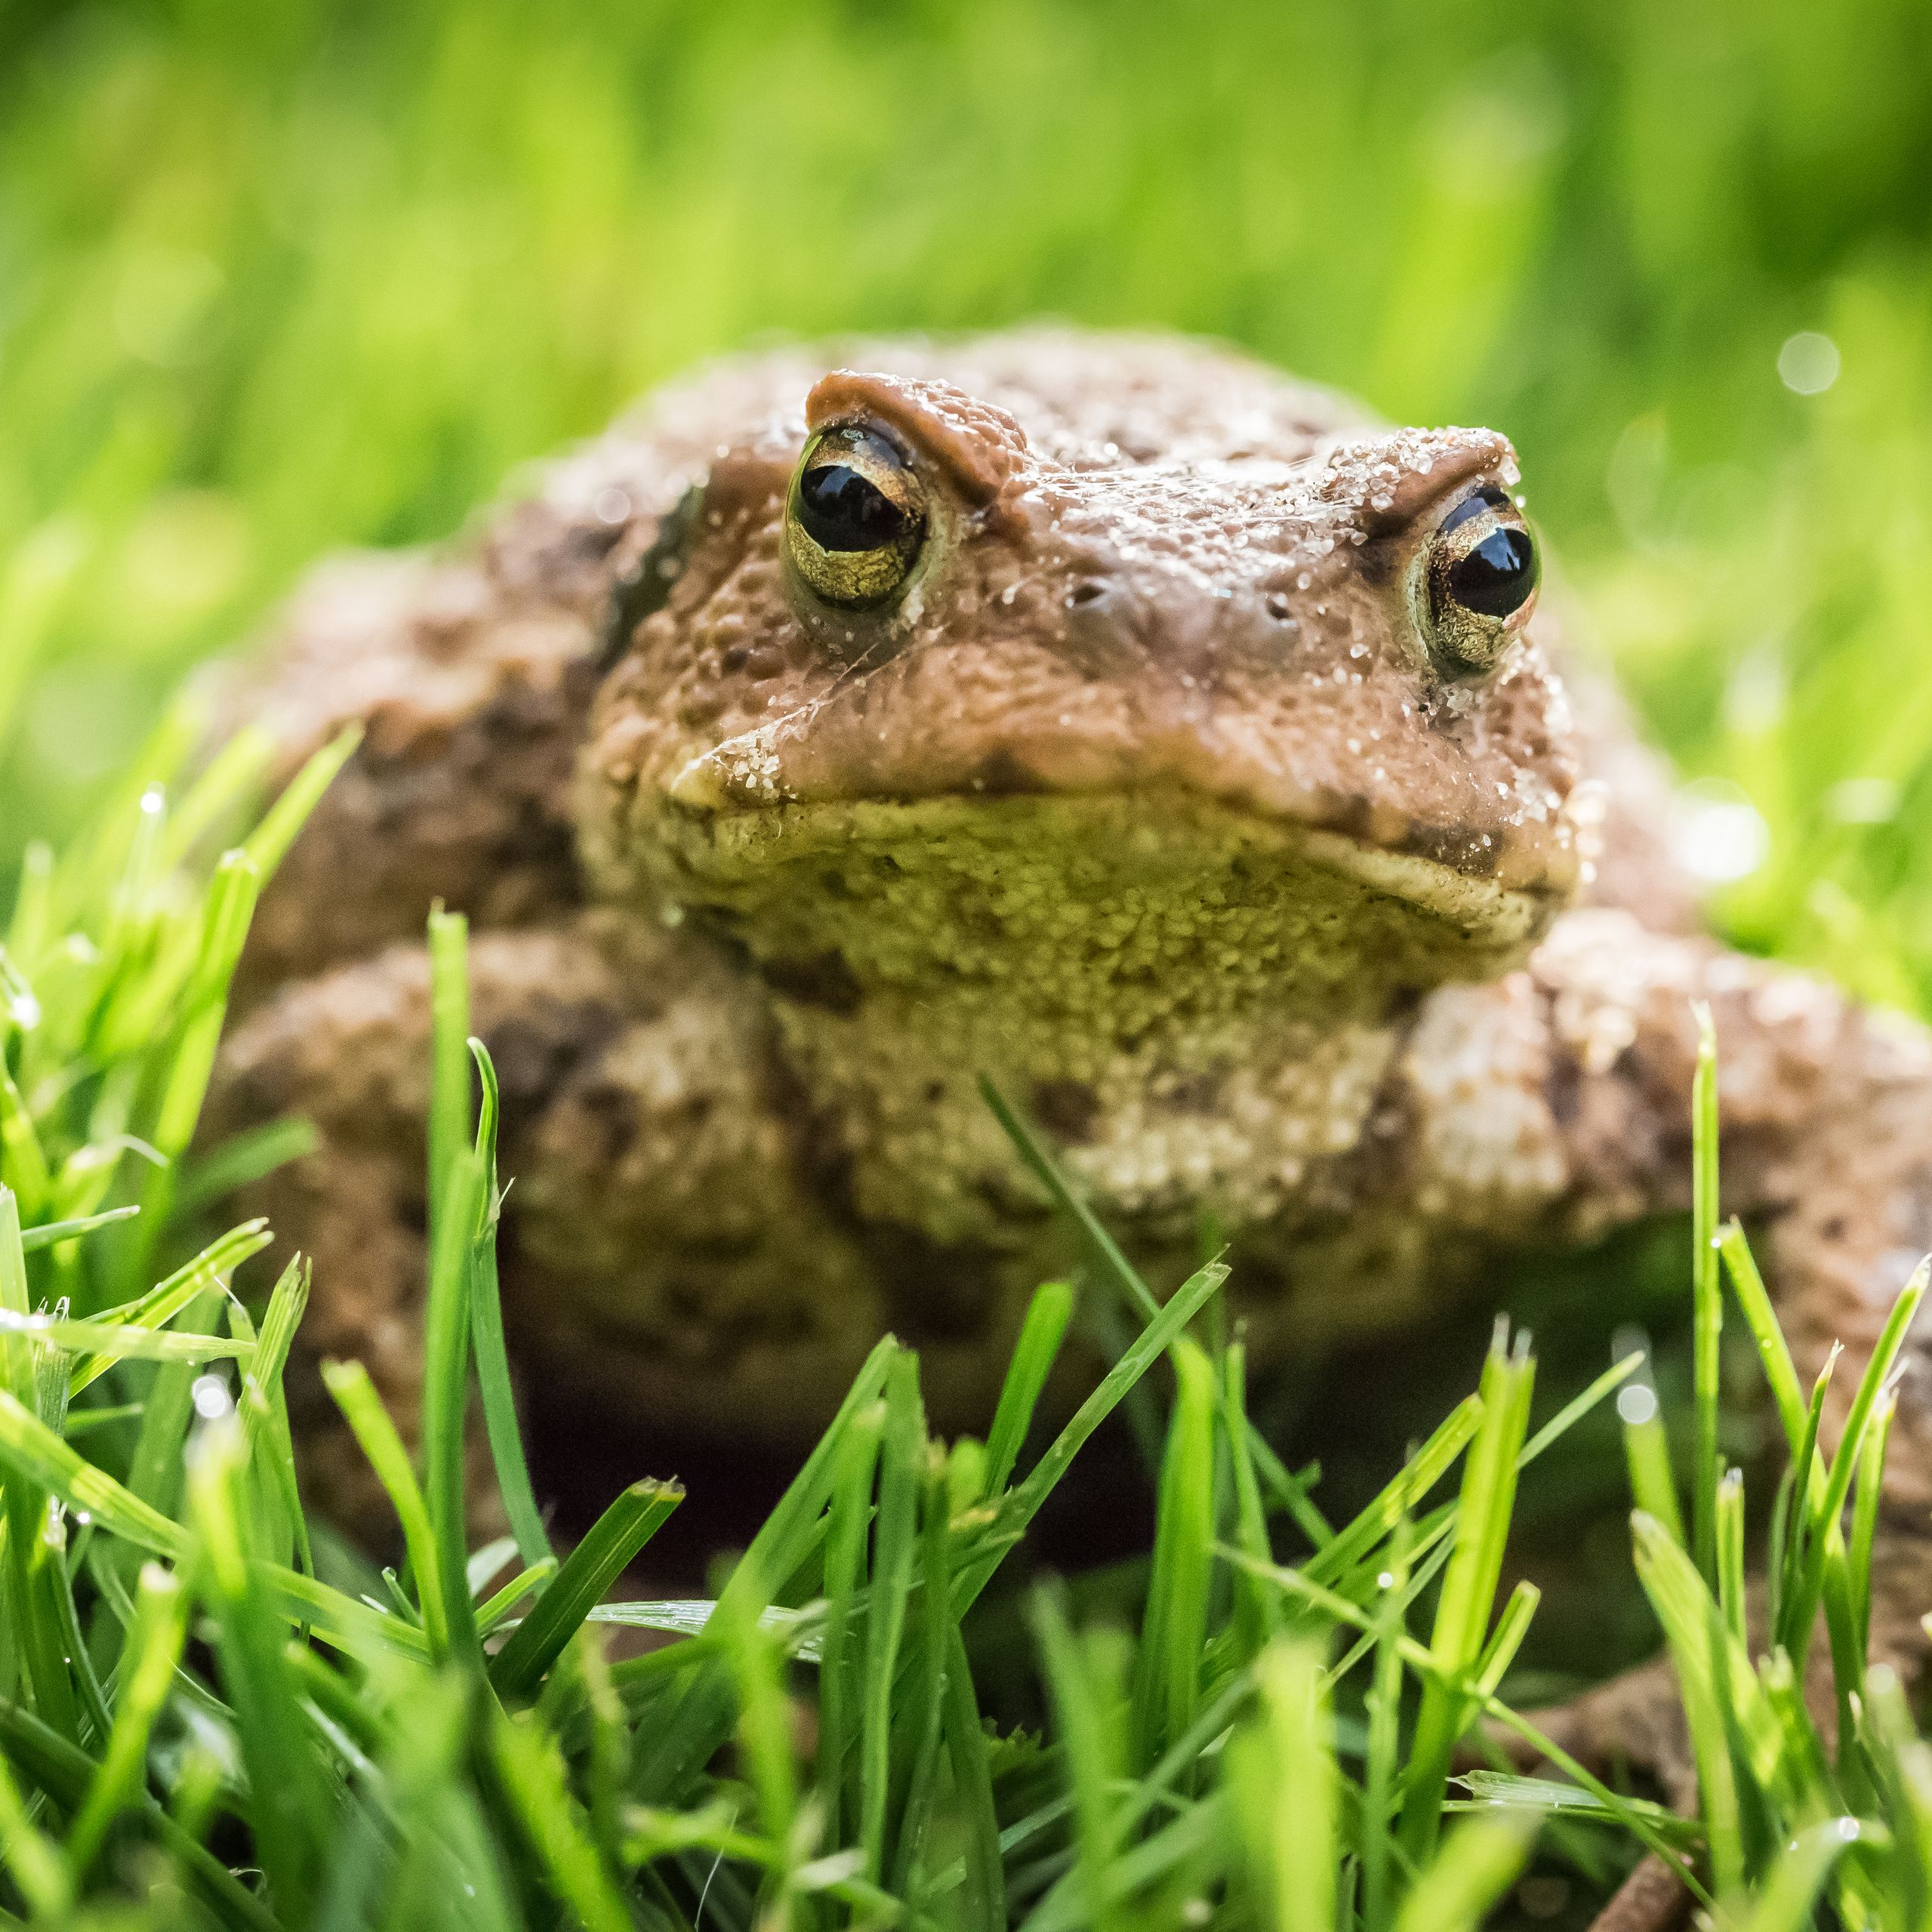 Rid Your Yard of Bugs, Build a Toad House With These Simple Steps